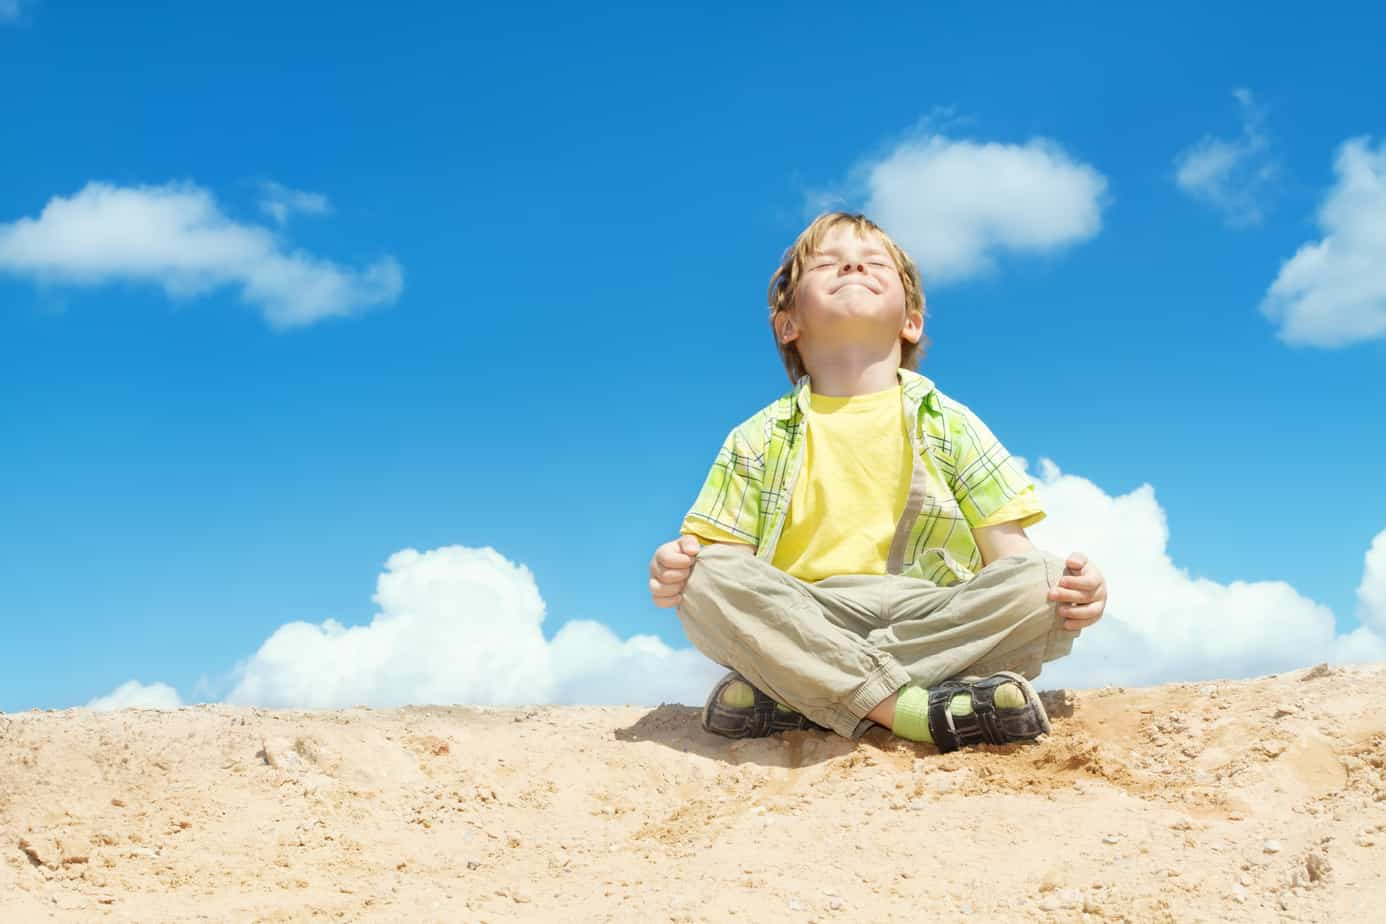 Present Moment Awareness Mindfulness Exercise For Kids